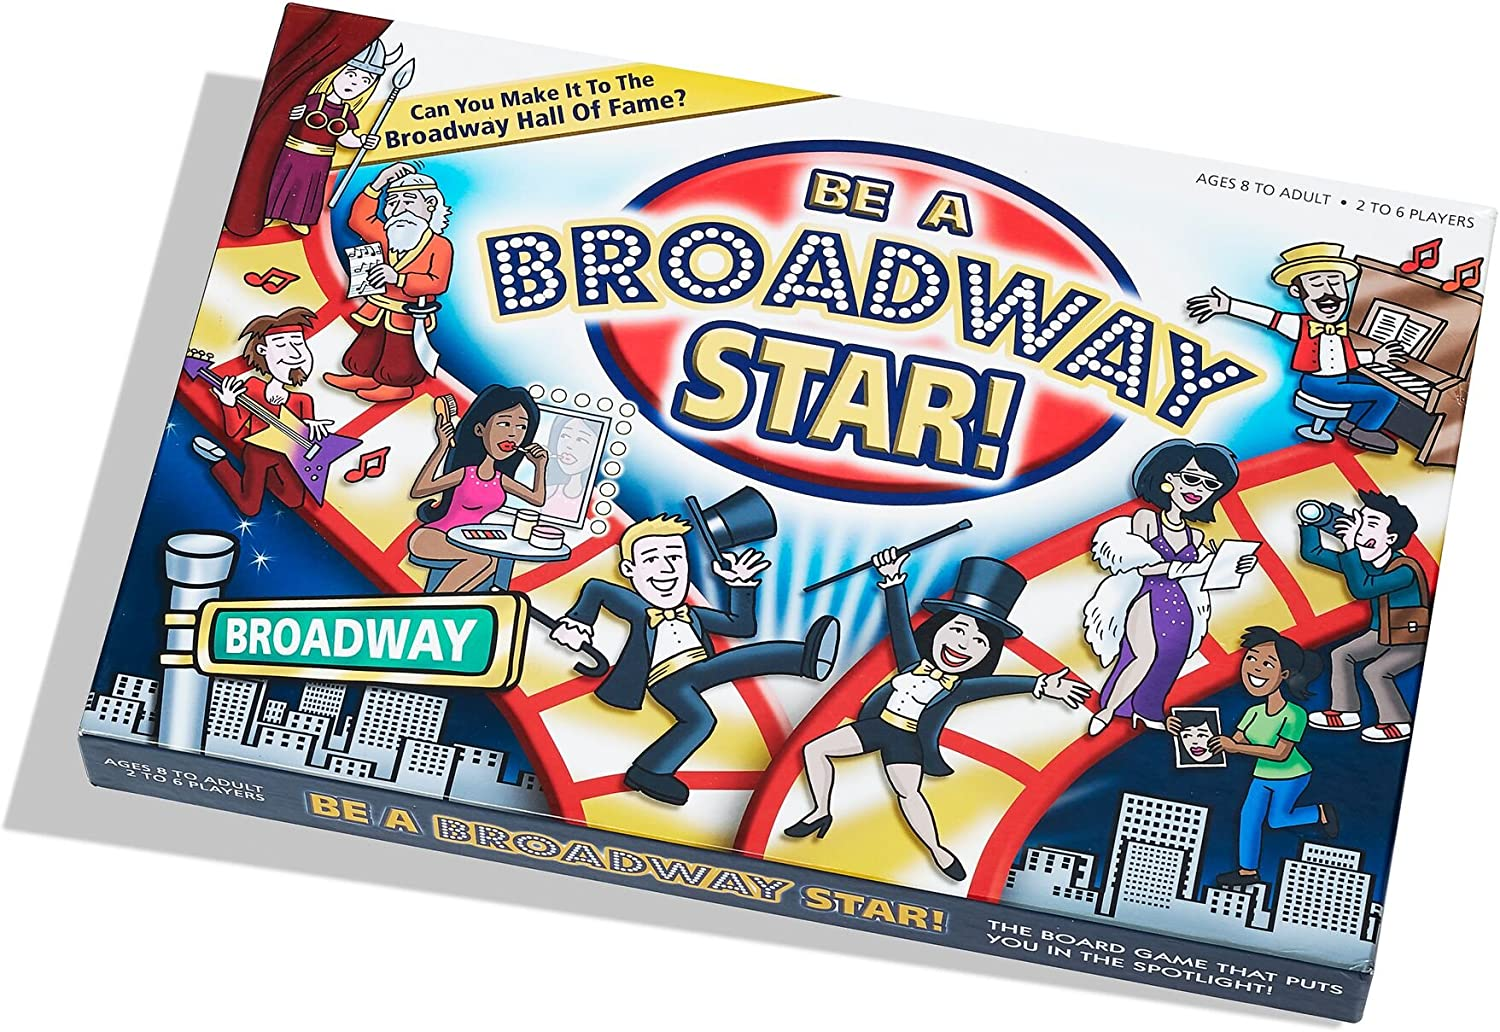 Be A Broadway Star by Be a Broadway Star